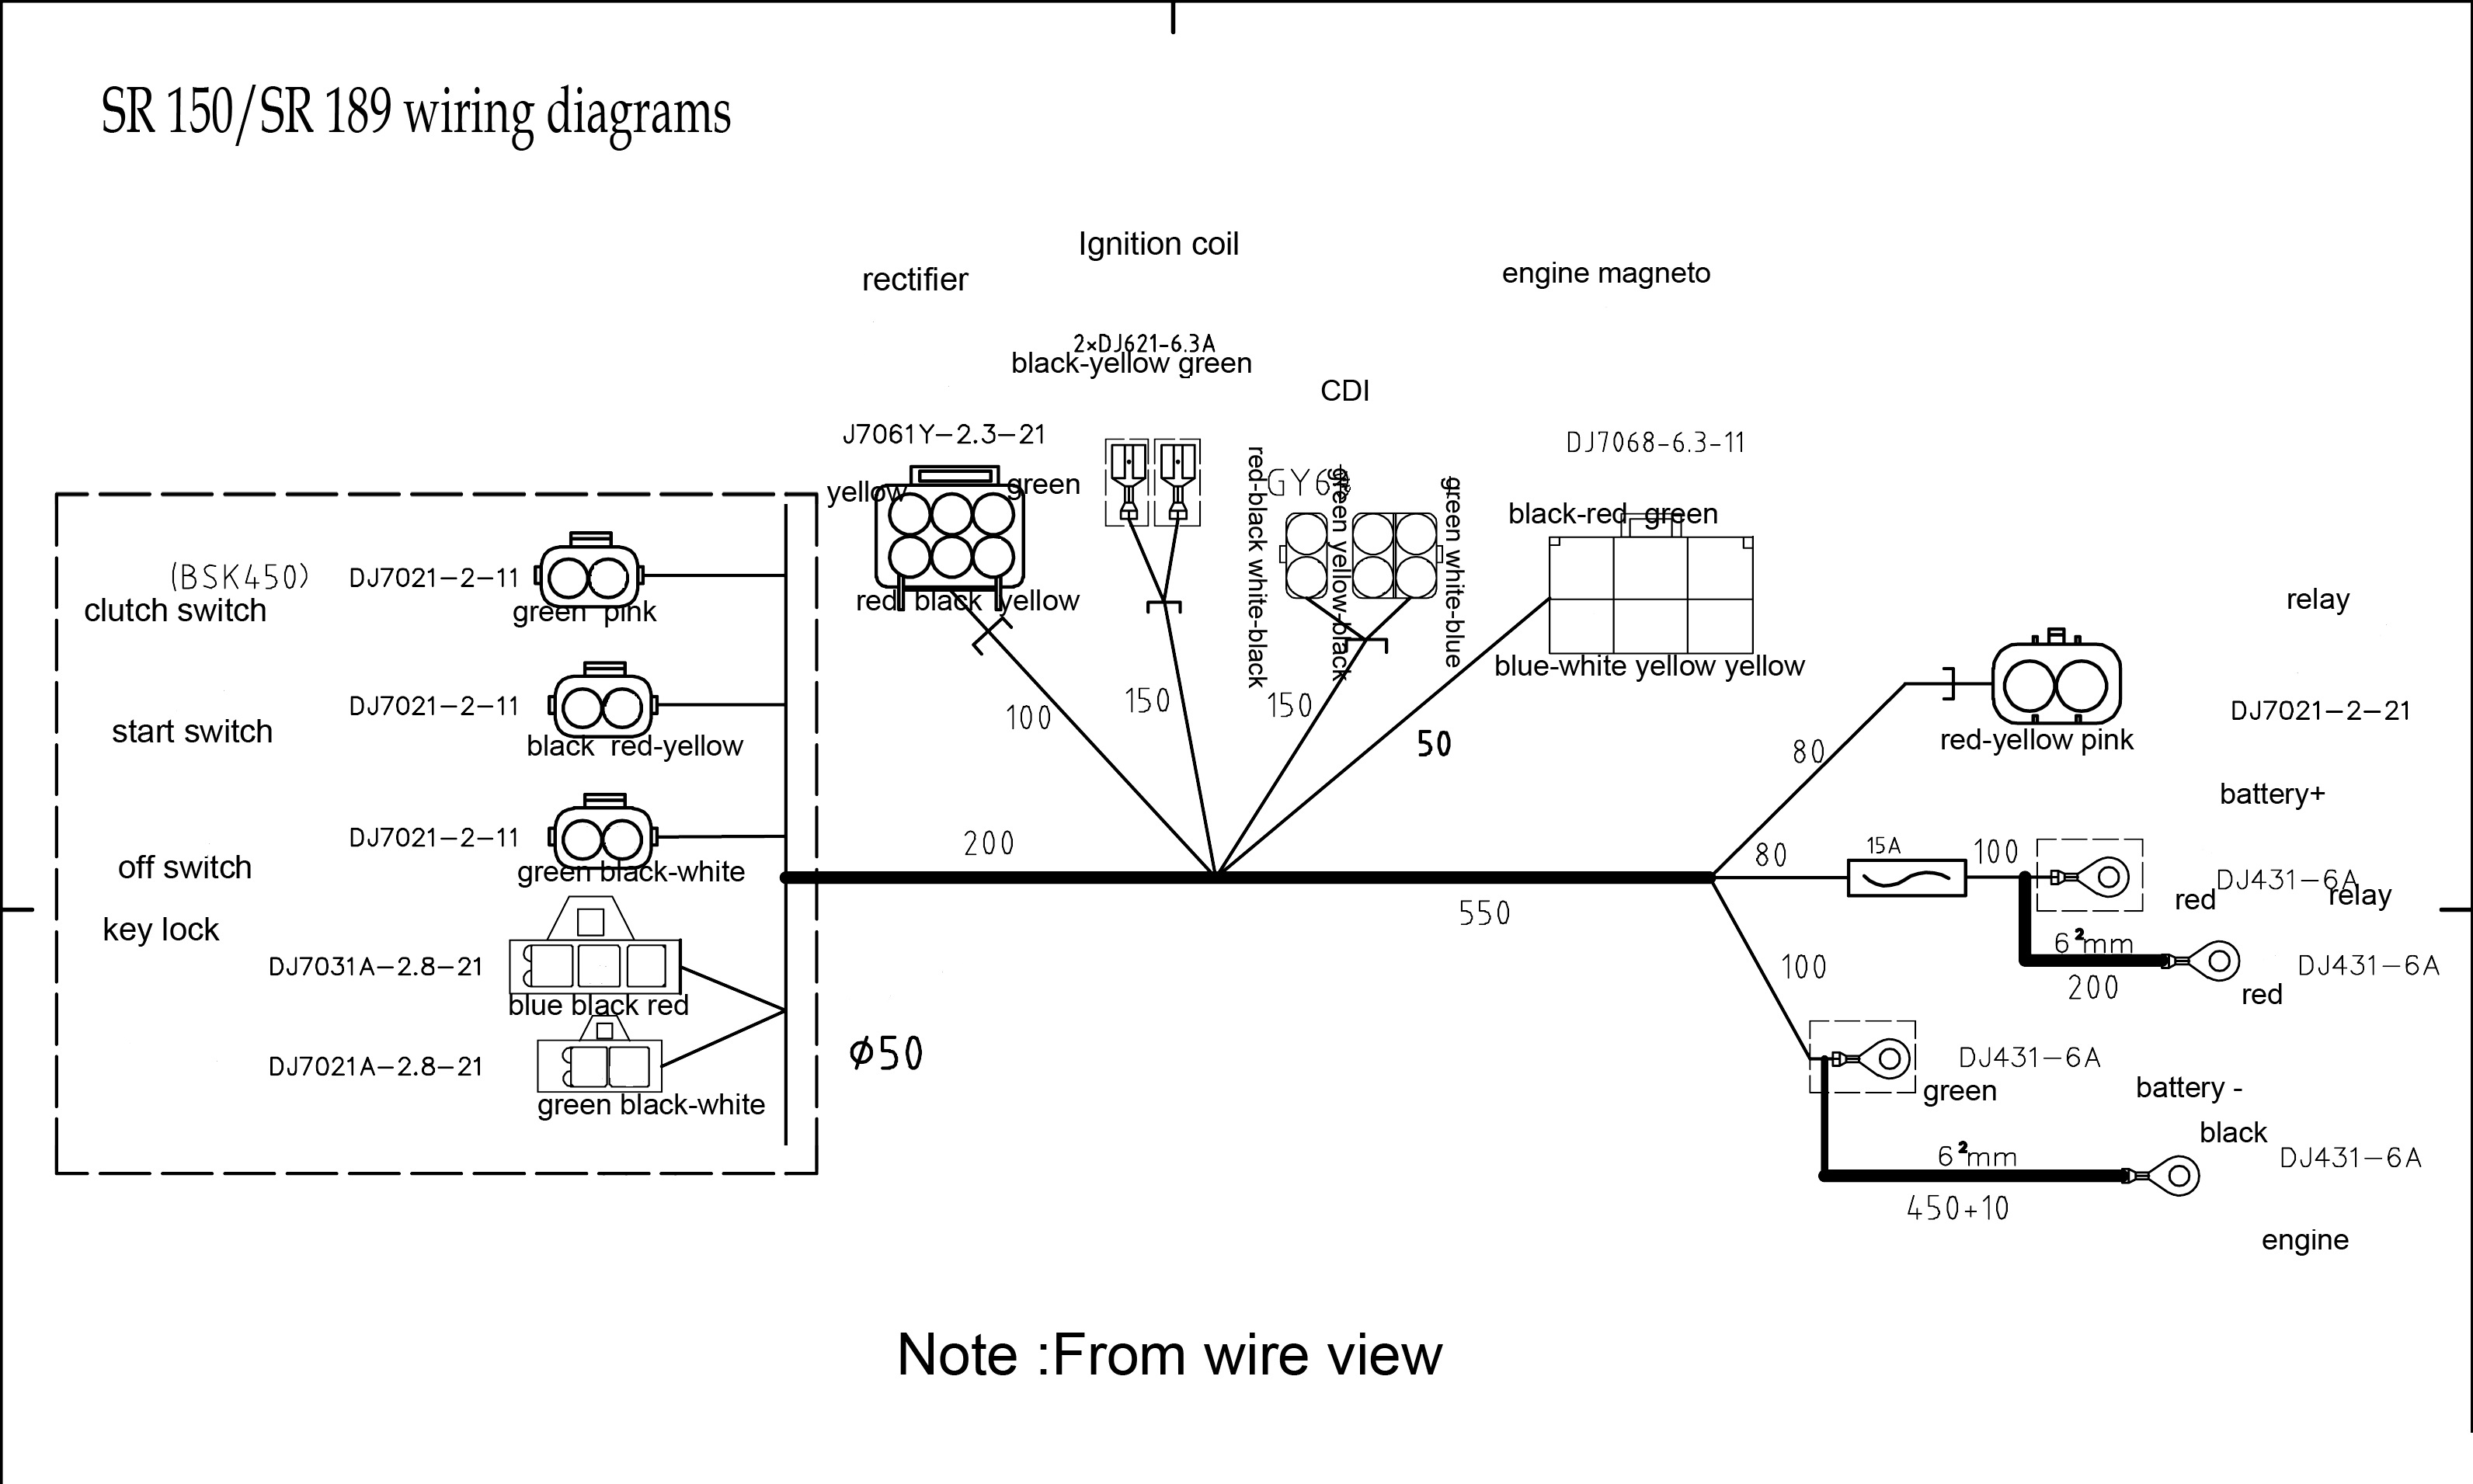 ... SR189 Dirt Bike Wire Diagram. >